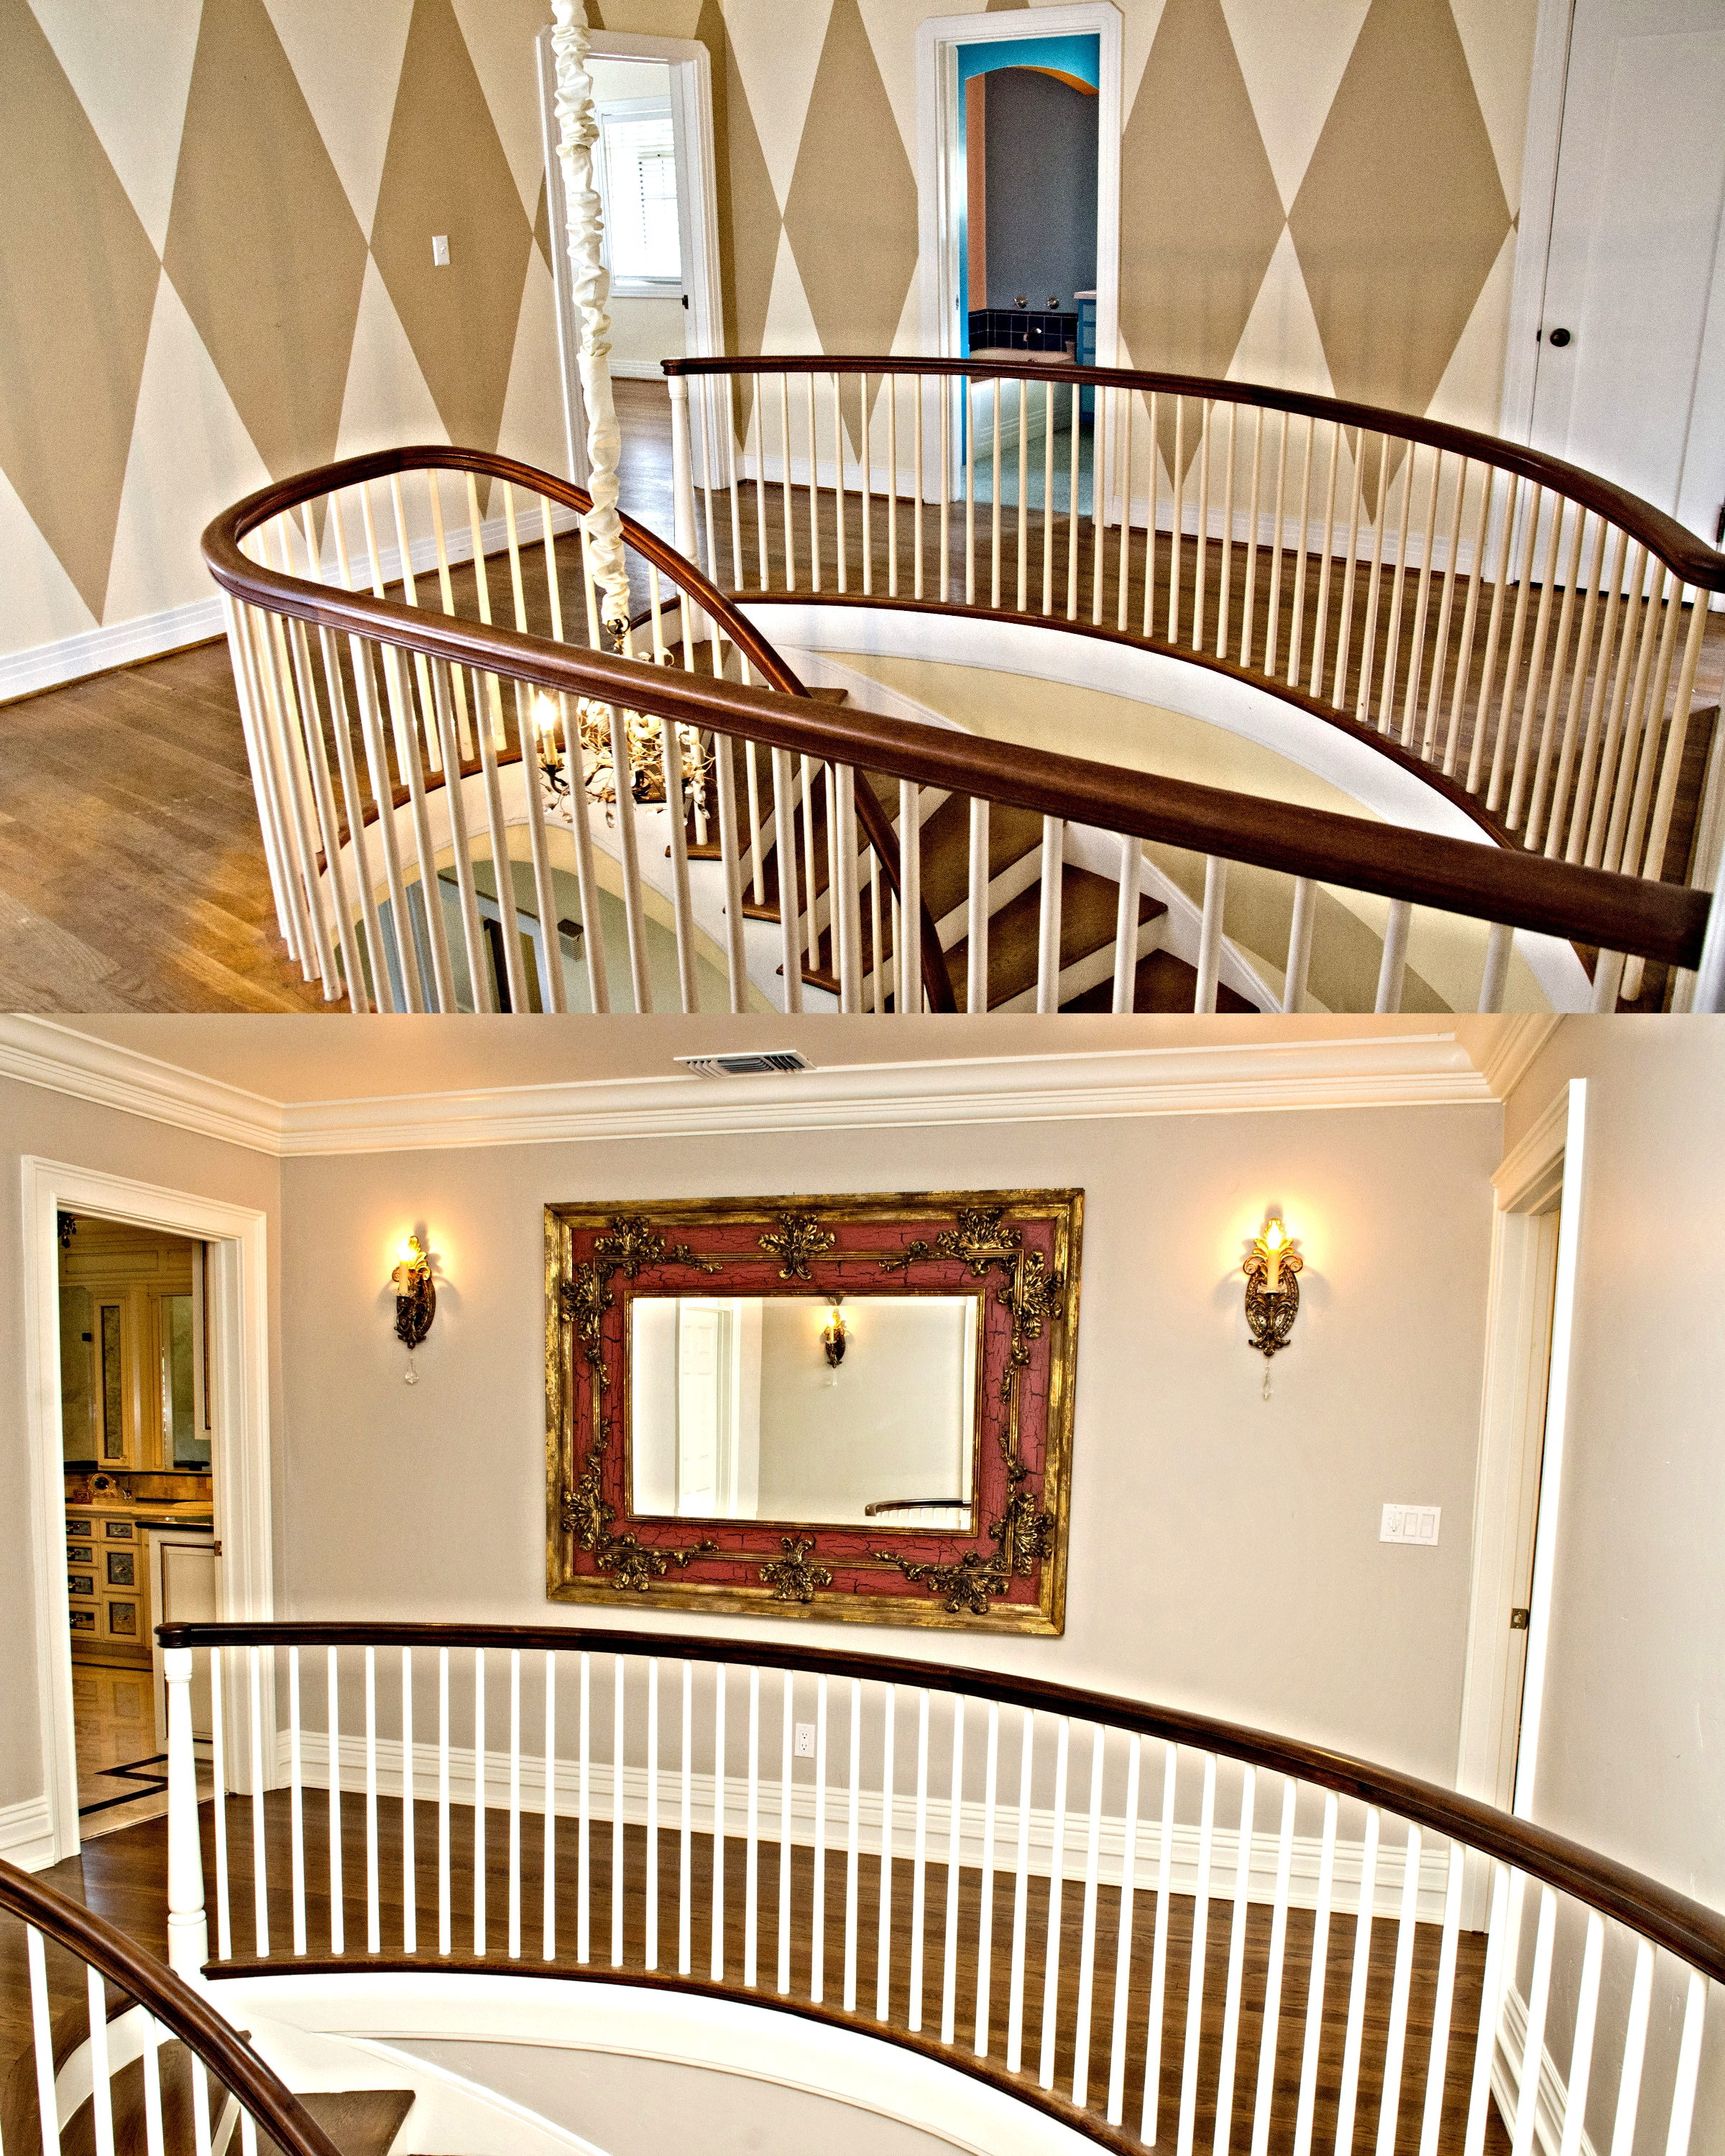 B4 & After staircase2.jpg